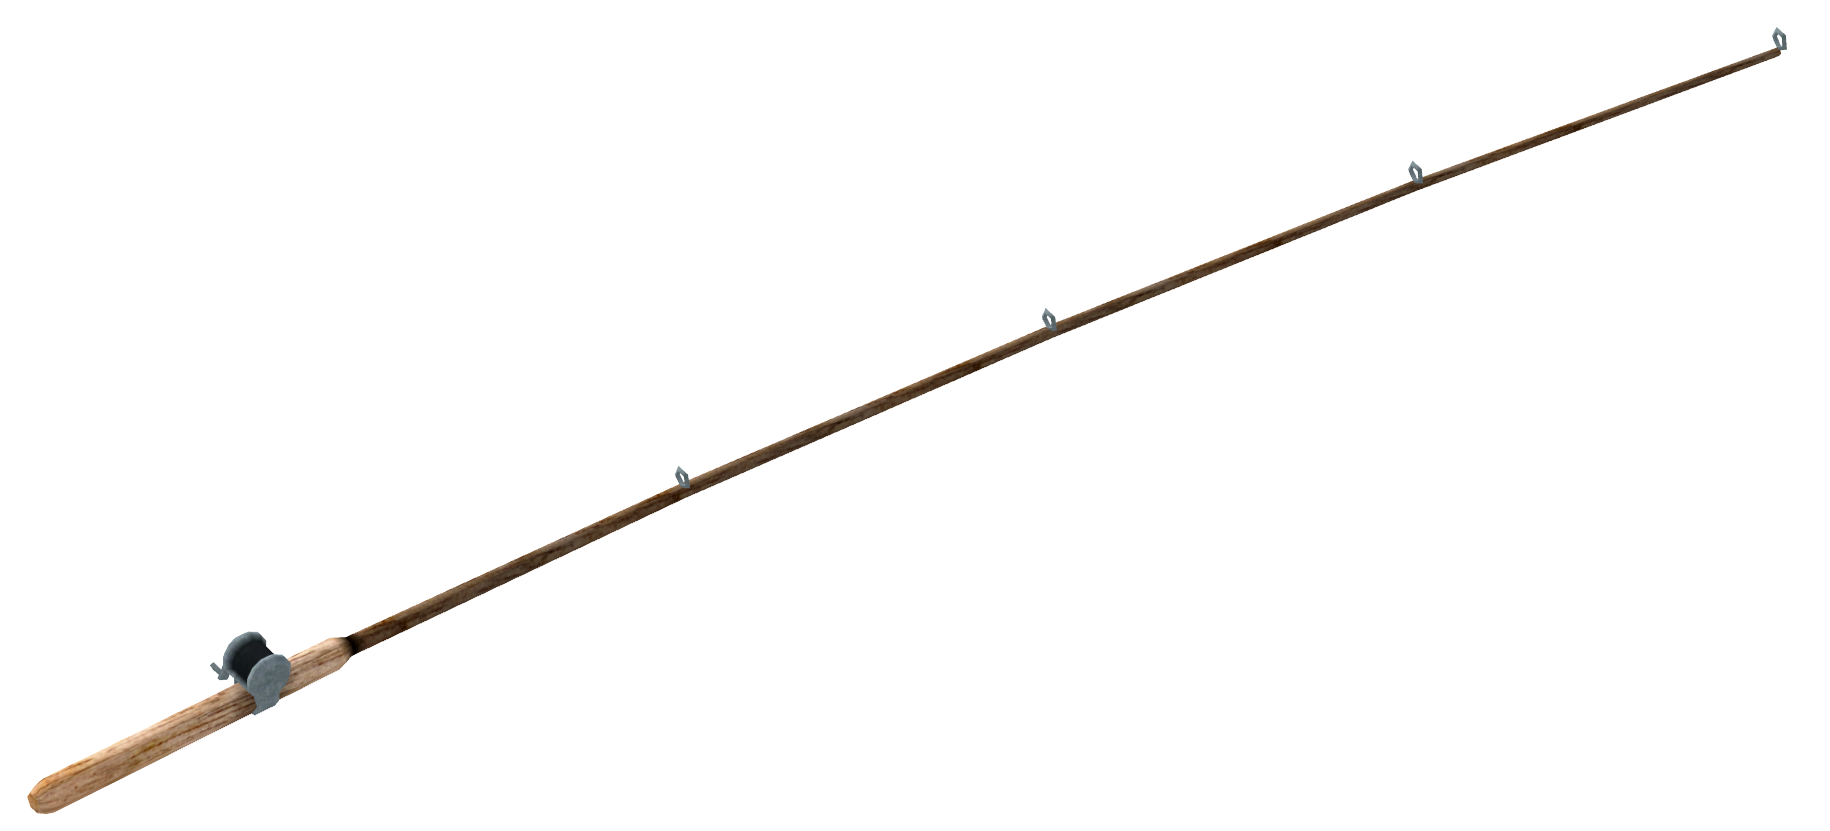 Fishing pole | Fallout Wiki | Fandom powered by Wikia